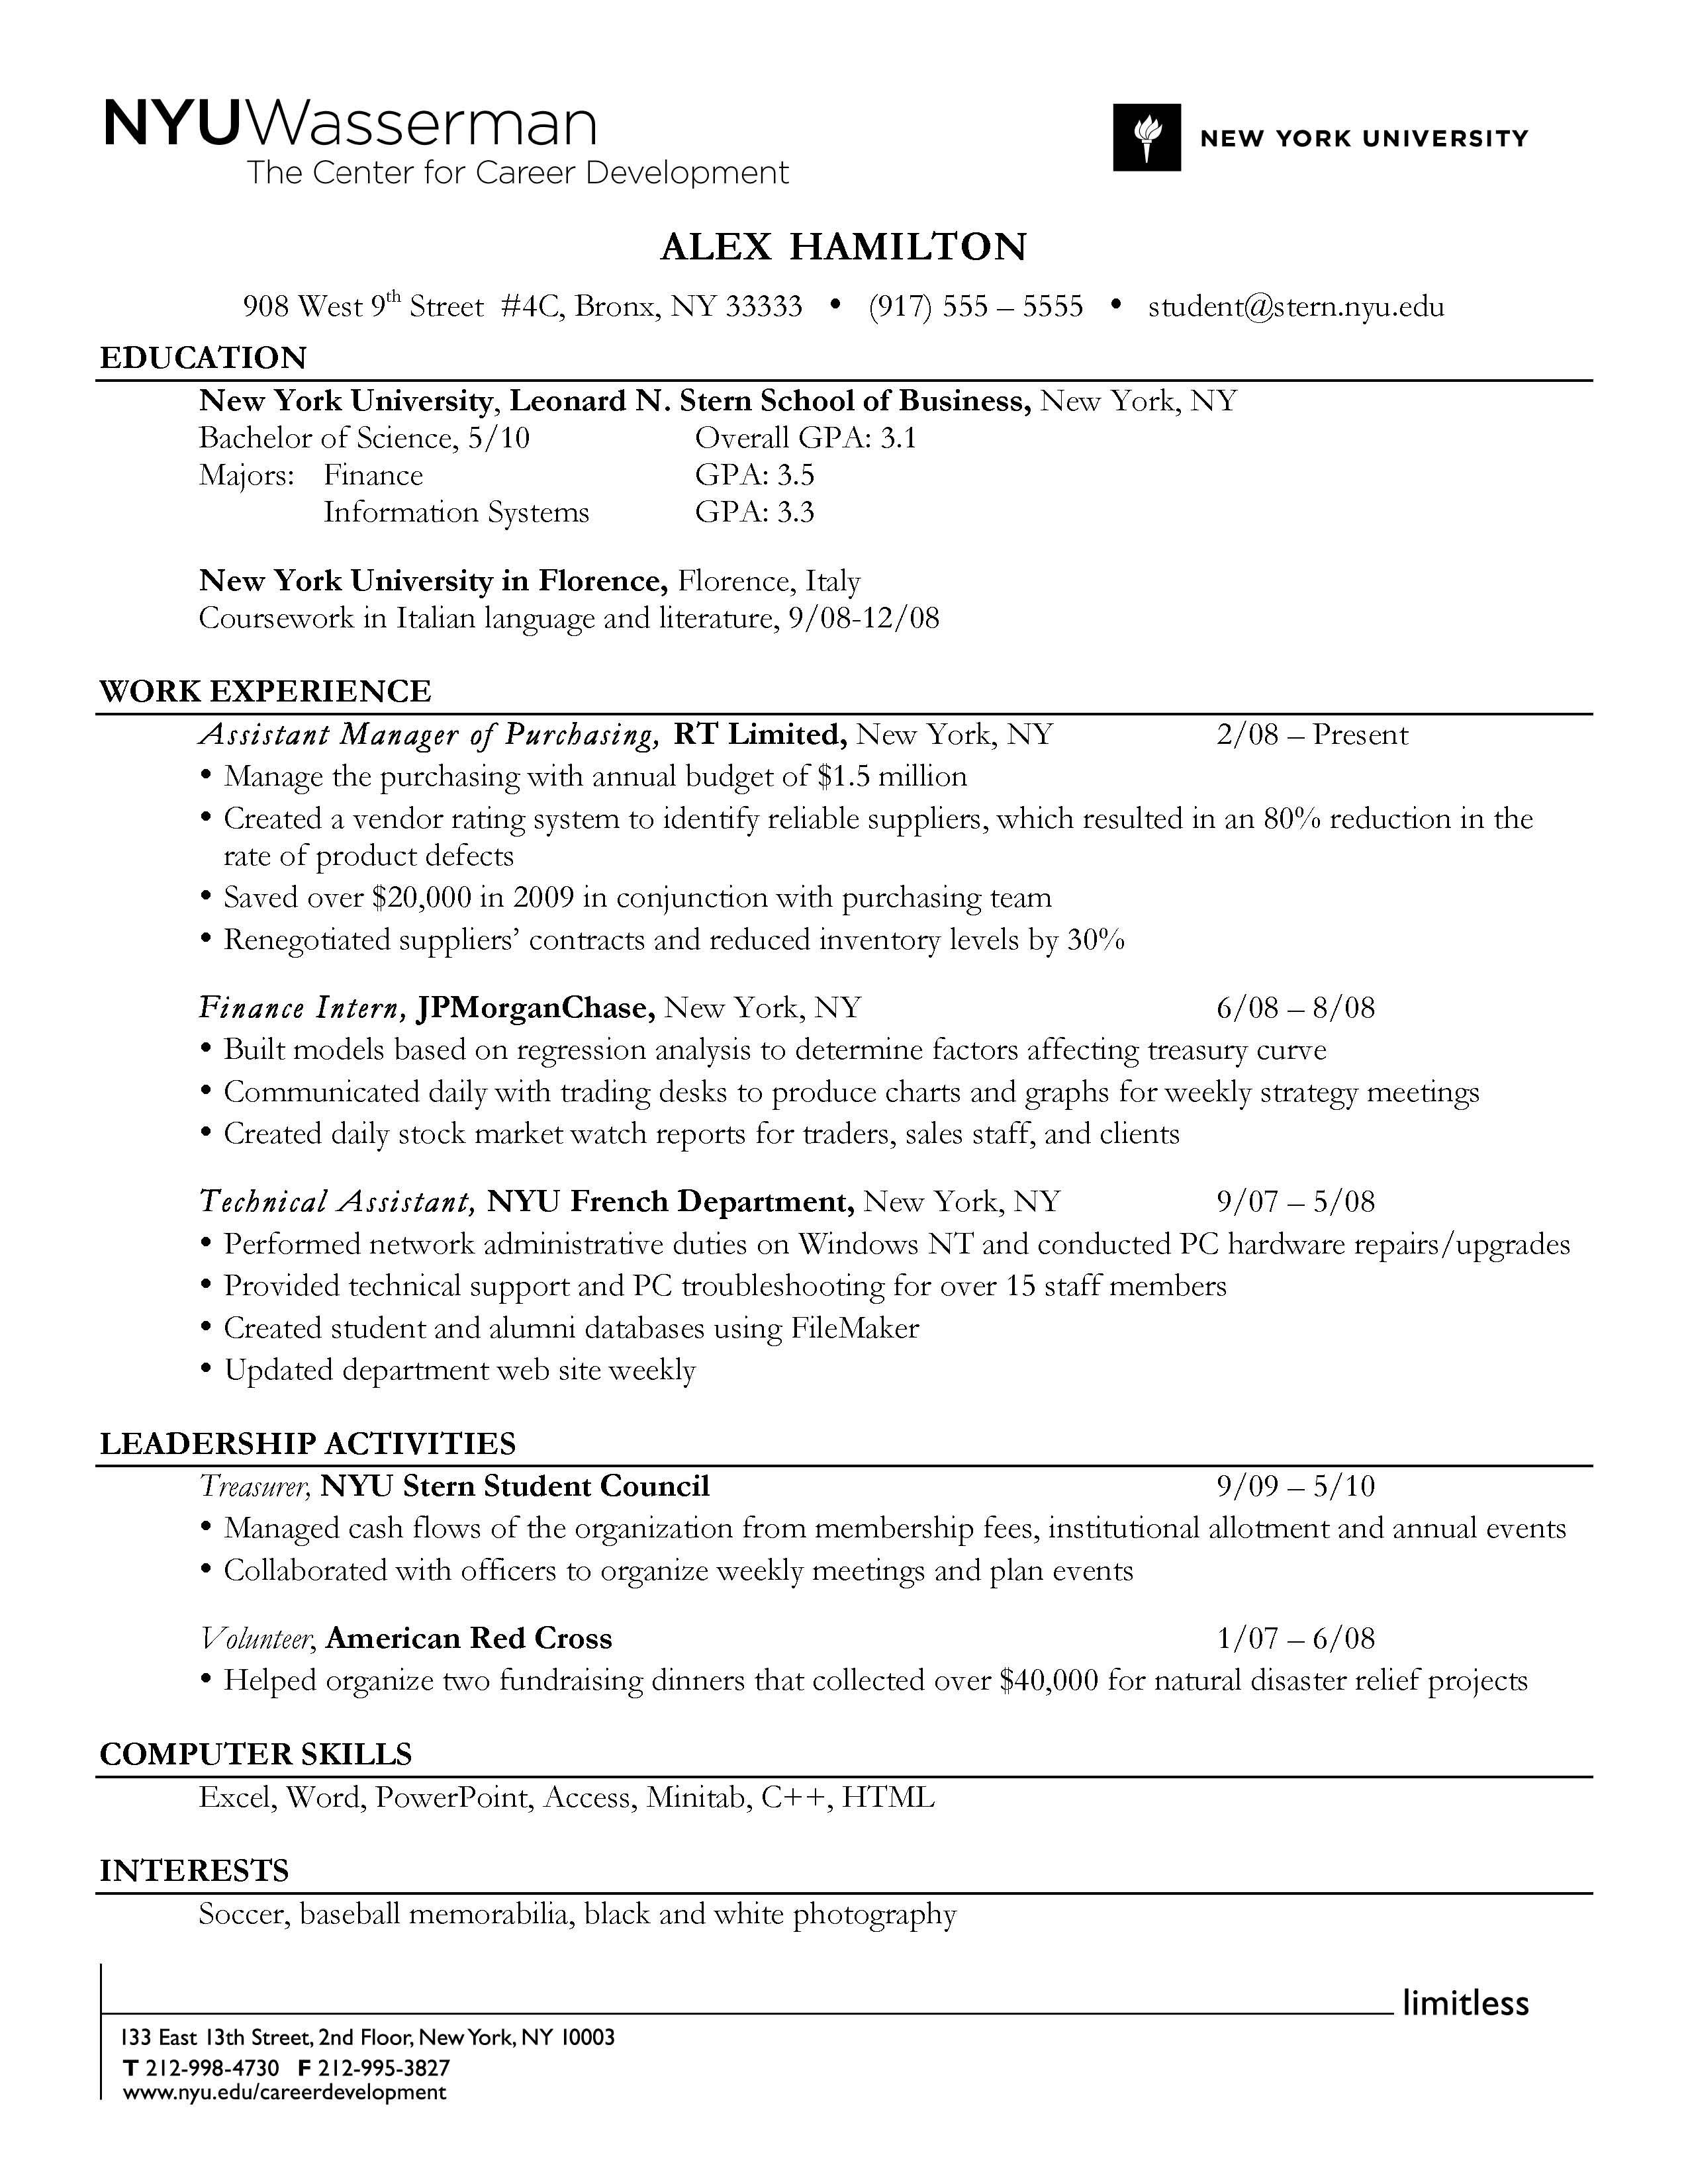 Activities Resume Examples Do Use A Reverse Chronological Order Resume Format To